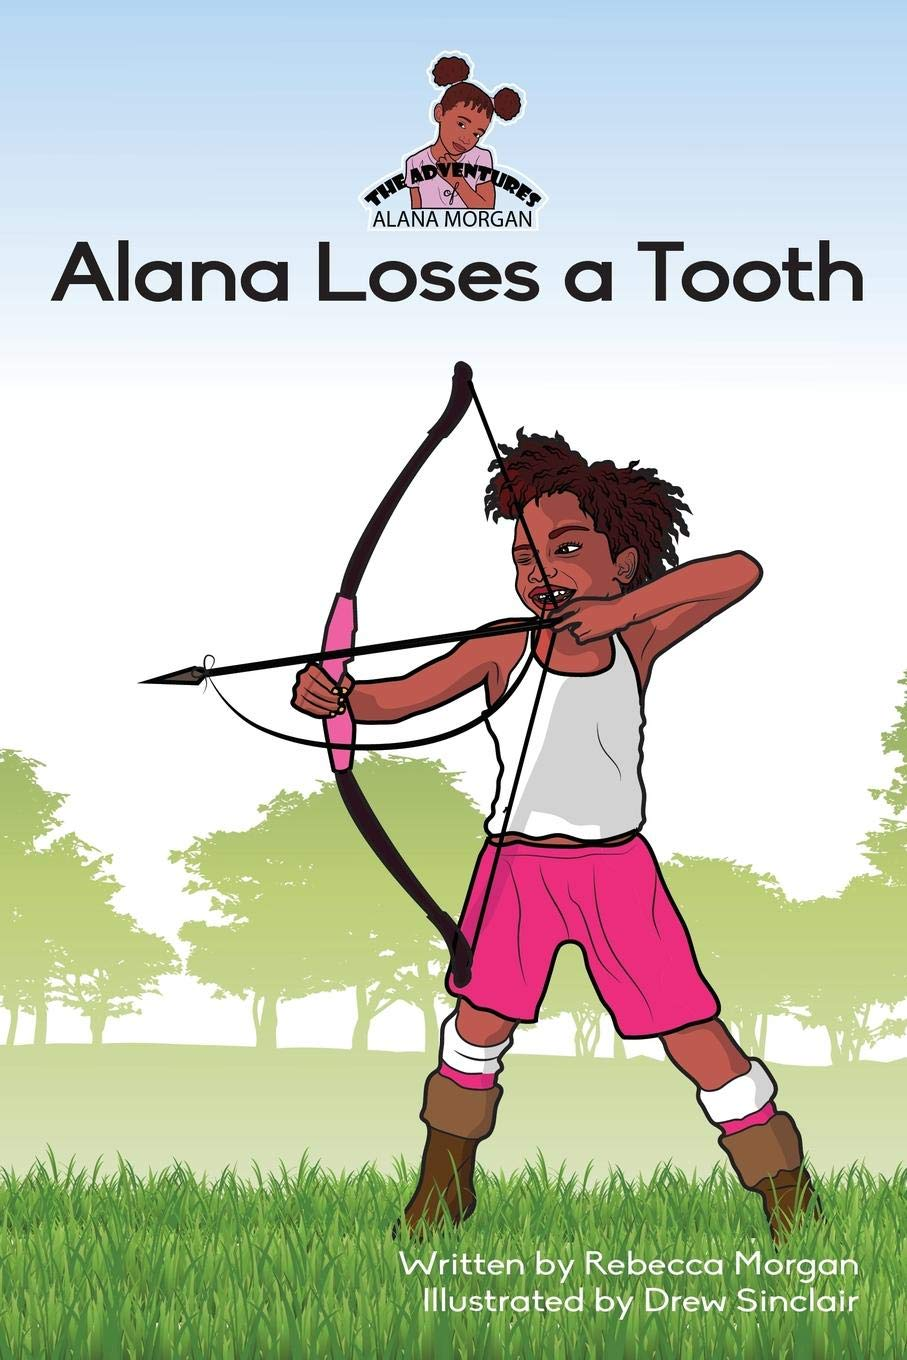 Alana Loses a Tooth